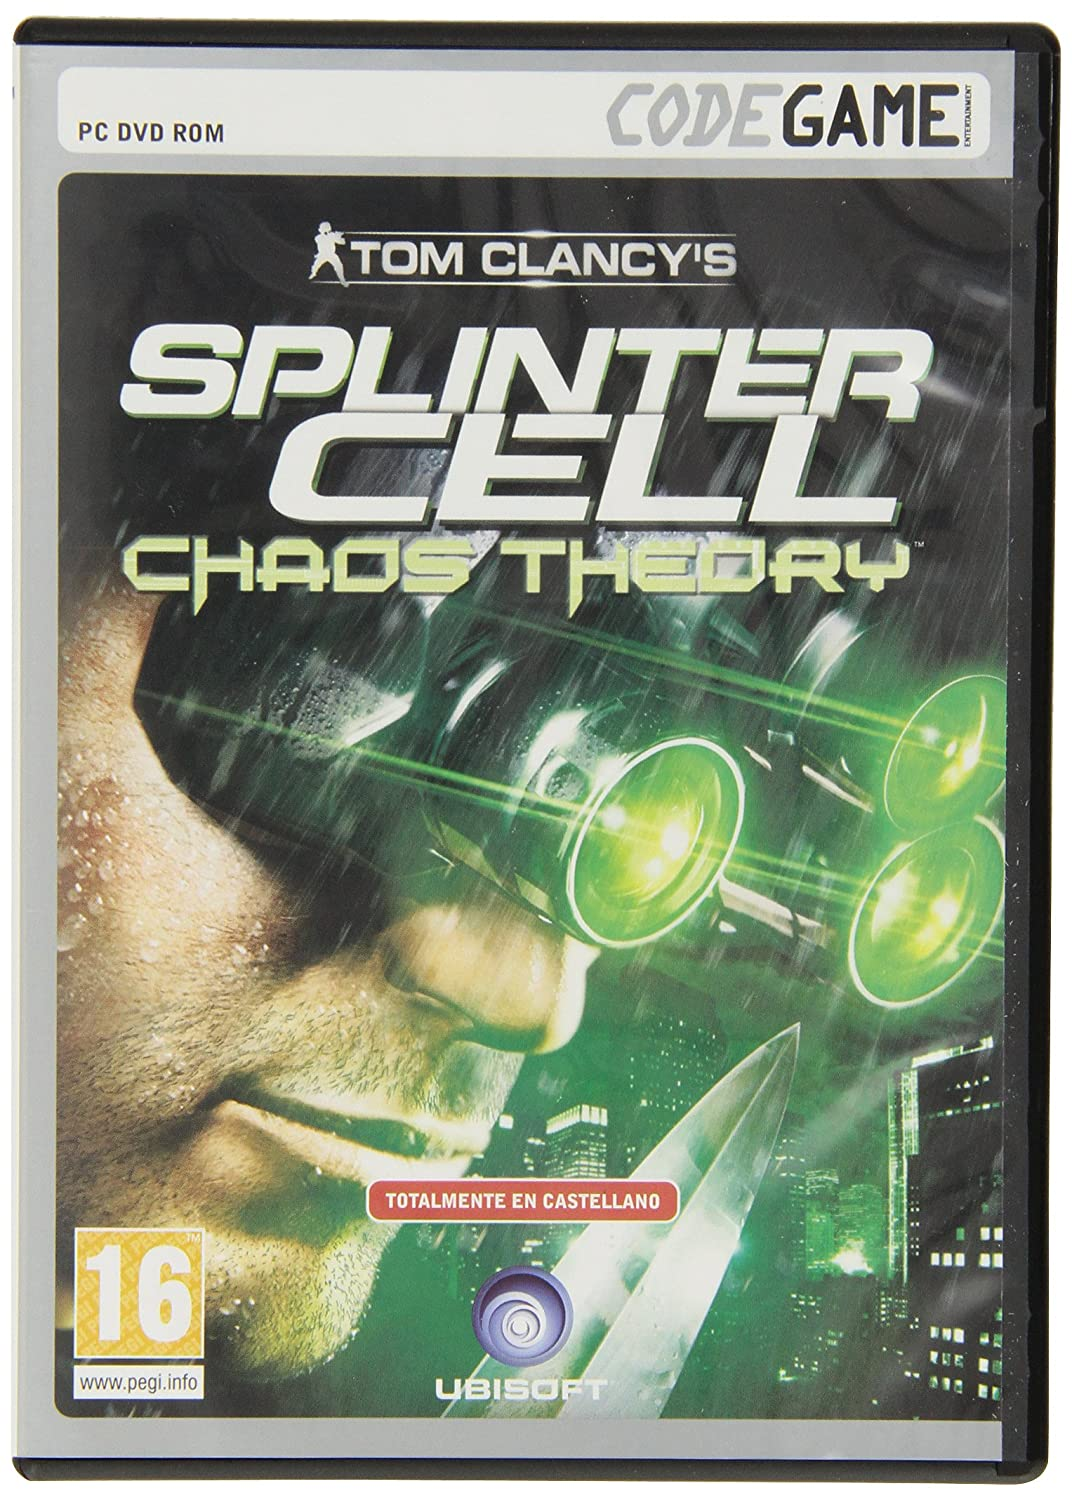 Codegame: Tom ClancyS Splinter Cell Chaos Theory: Amazon.es ...